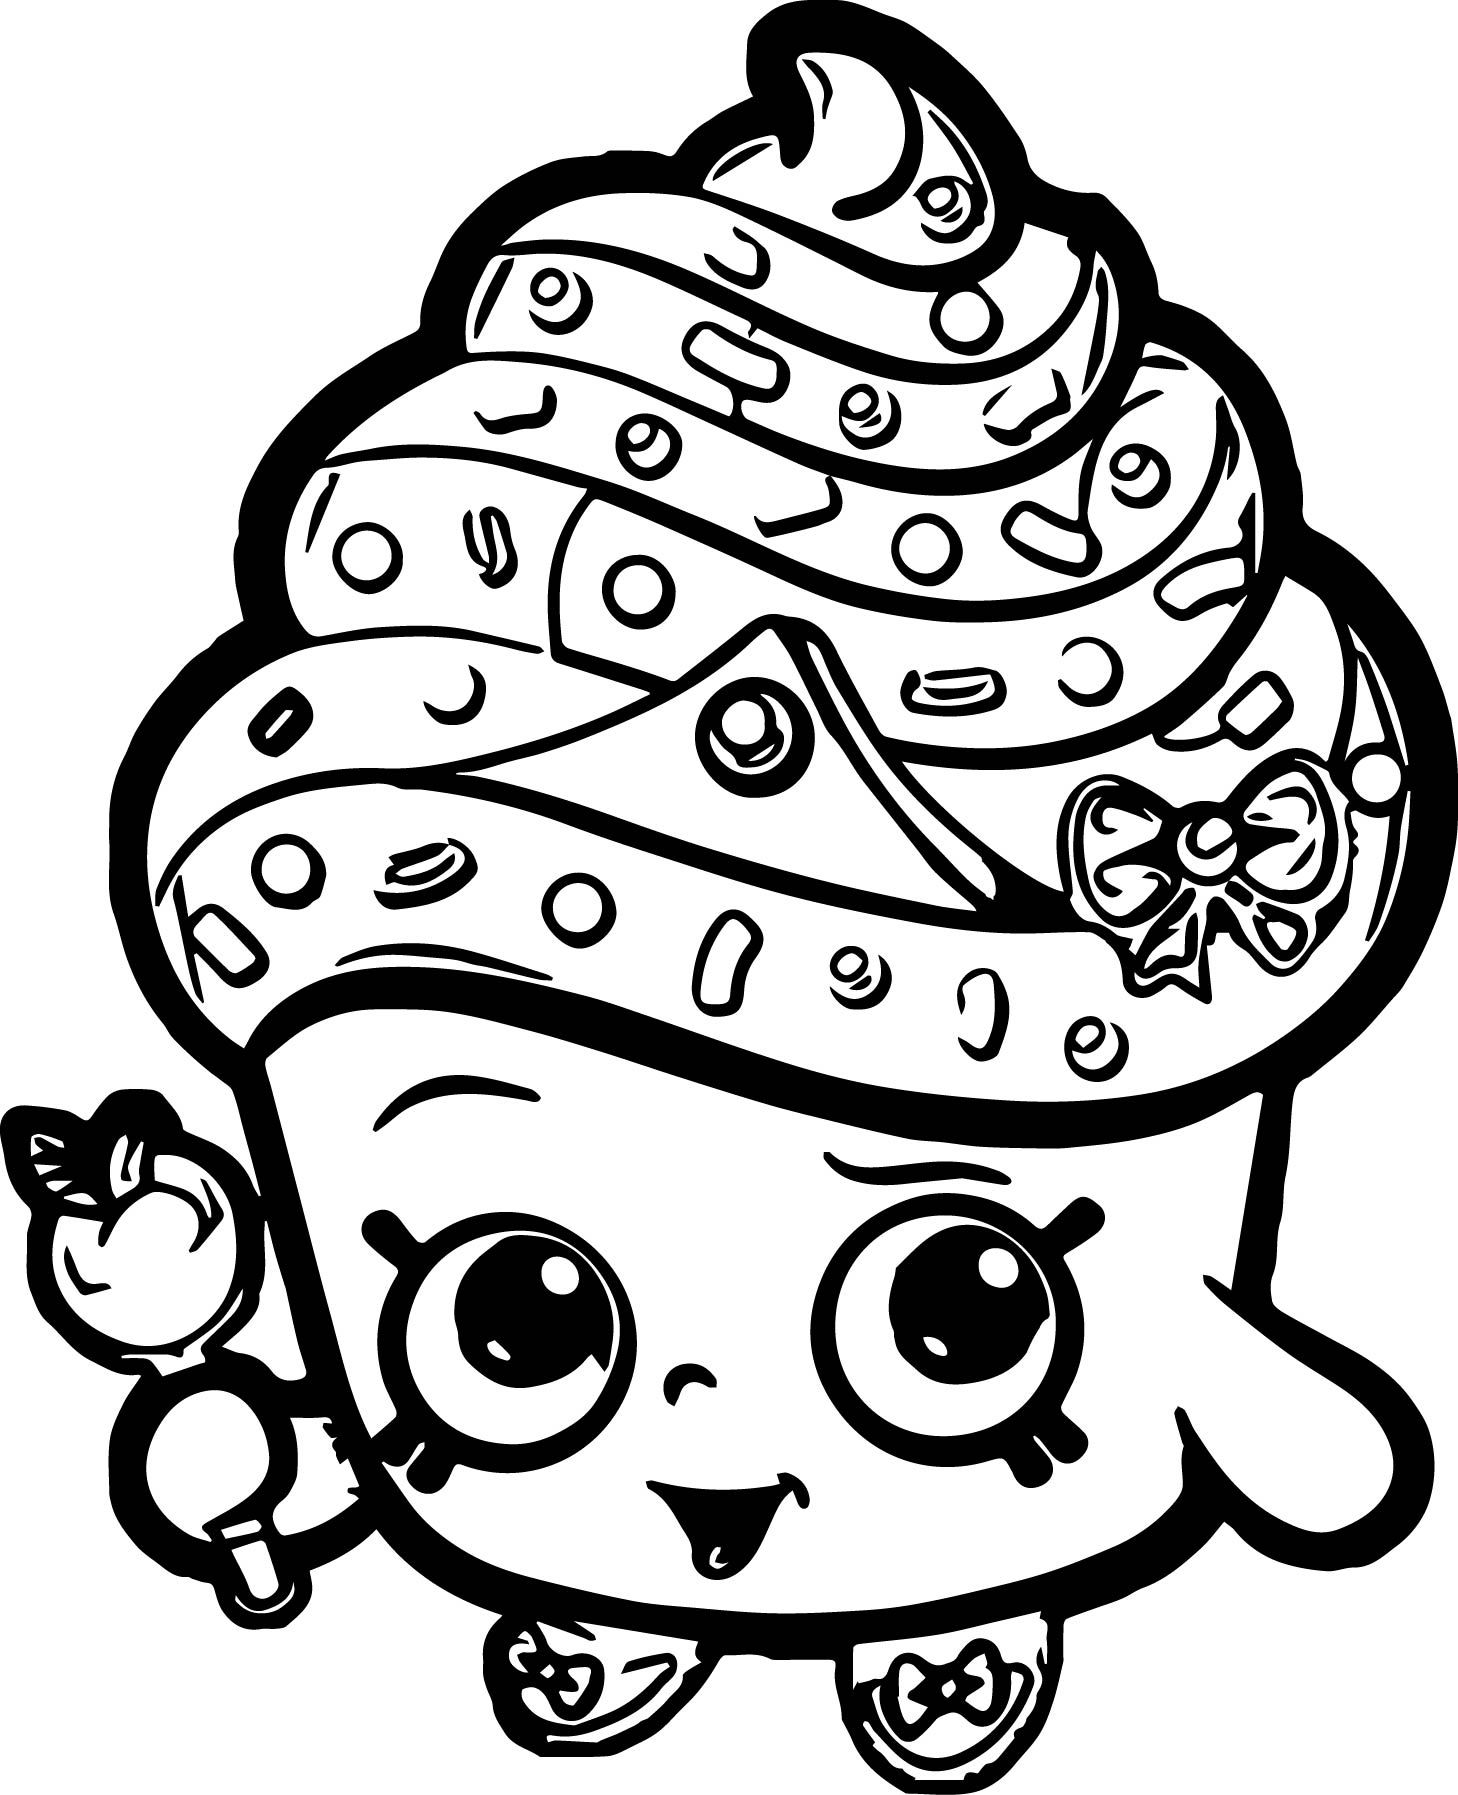 coloring worksheets shopkins shopkins coloring pages pdf at getcoloringscom free worksheets coloring shopkins